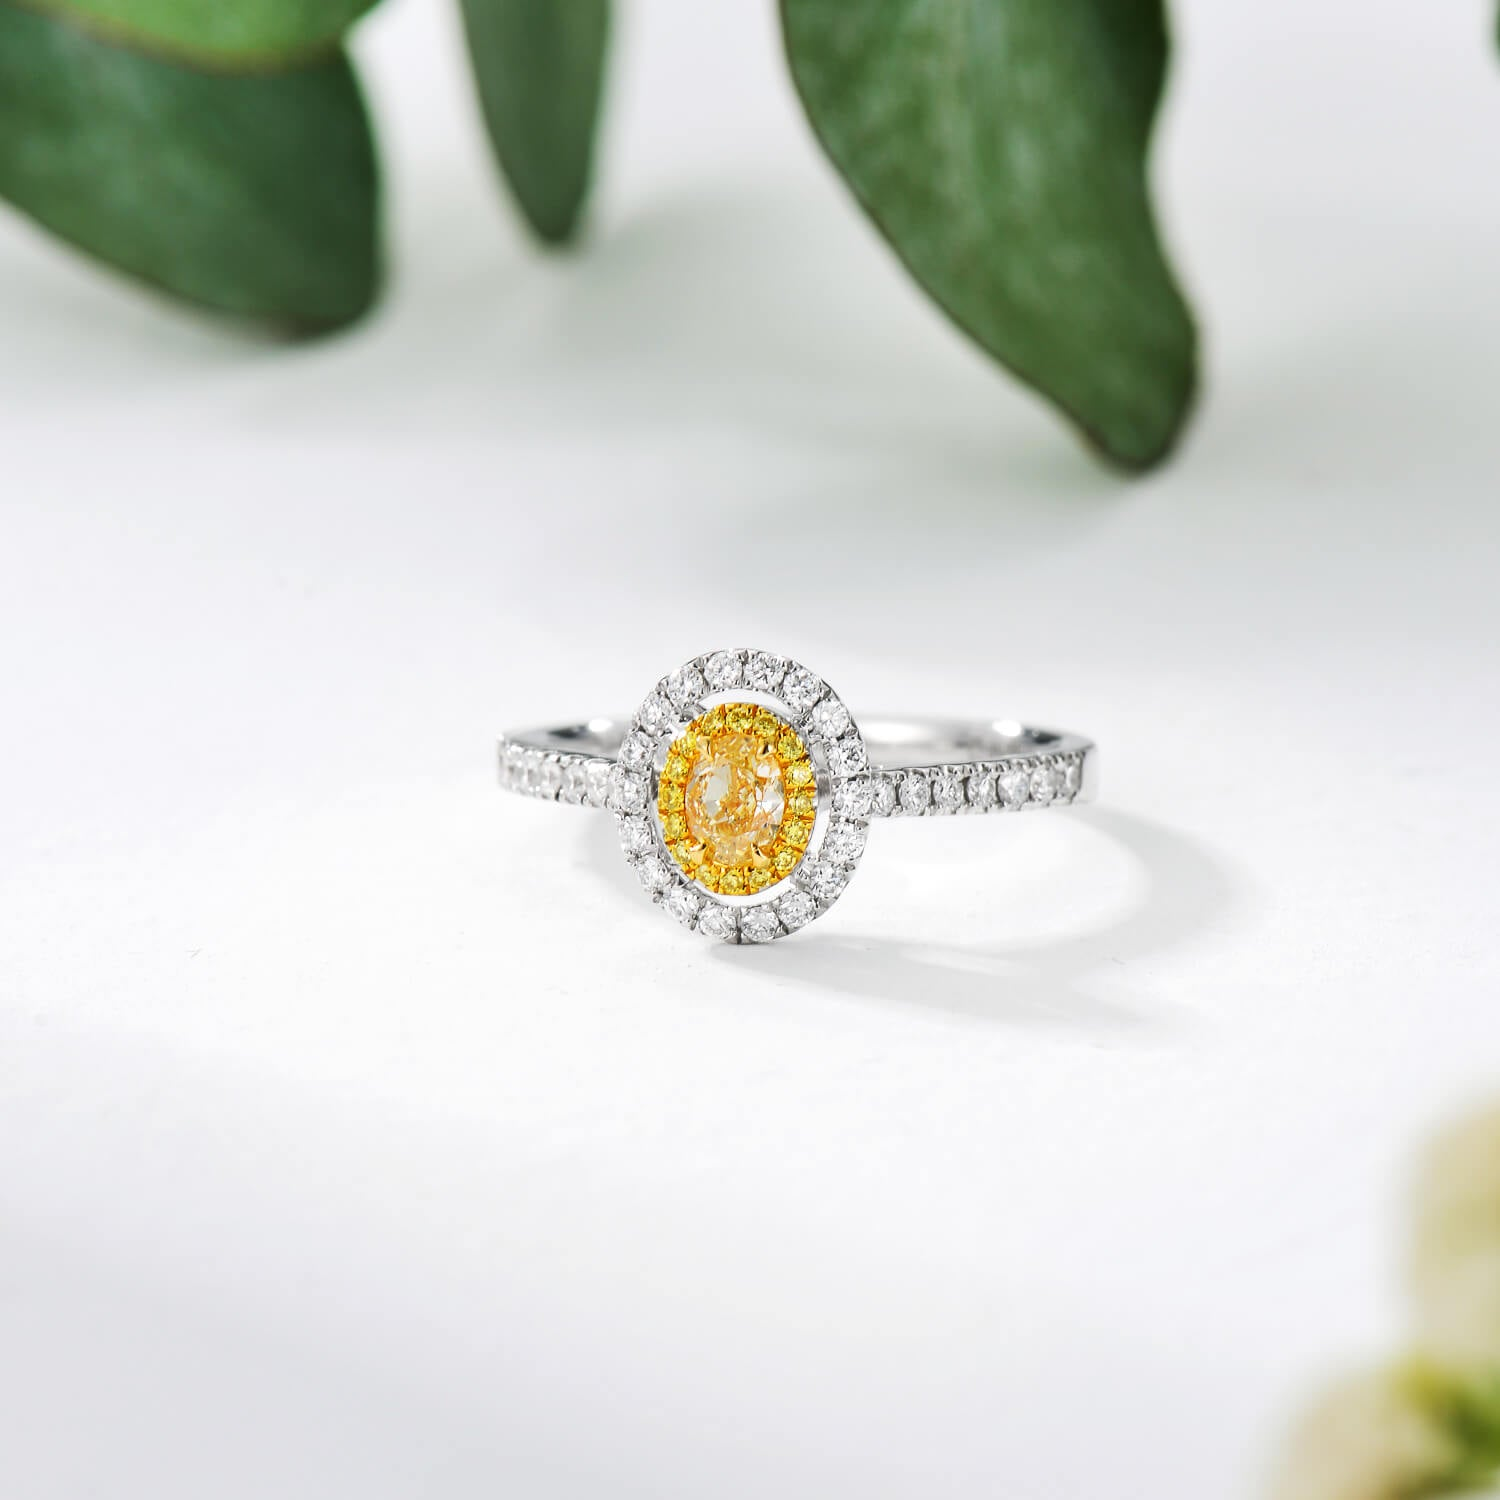 18K Classic Halo Style Oval Yellow Diamond Engagement Ring